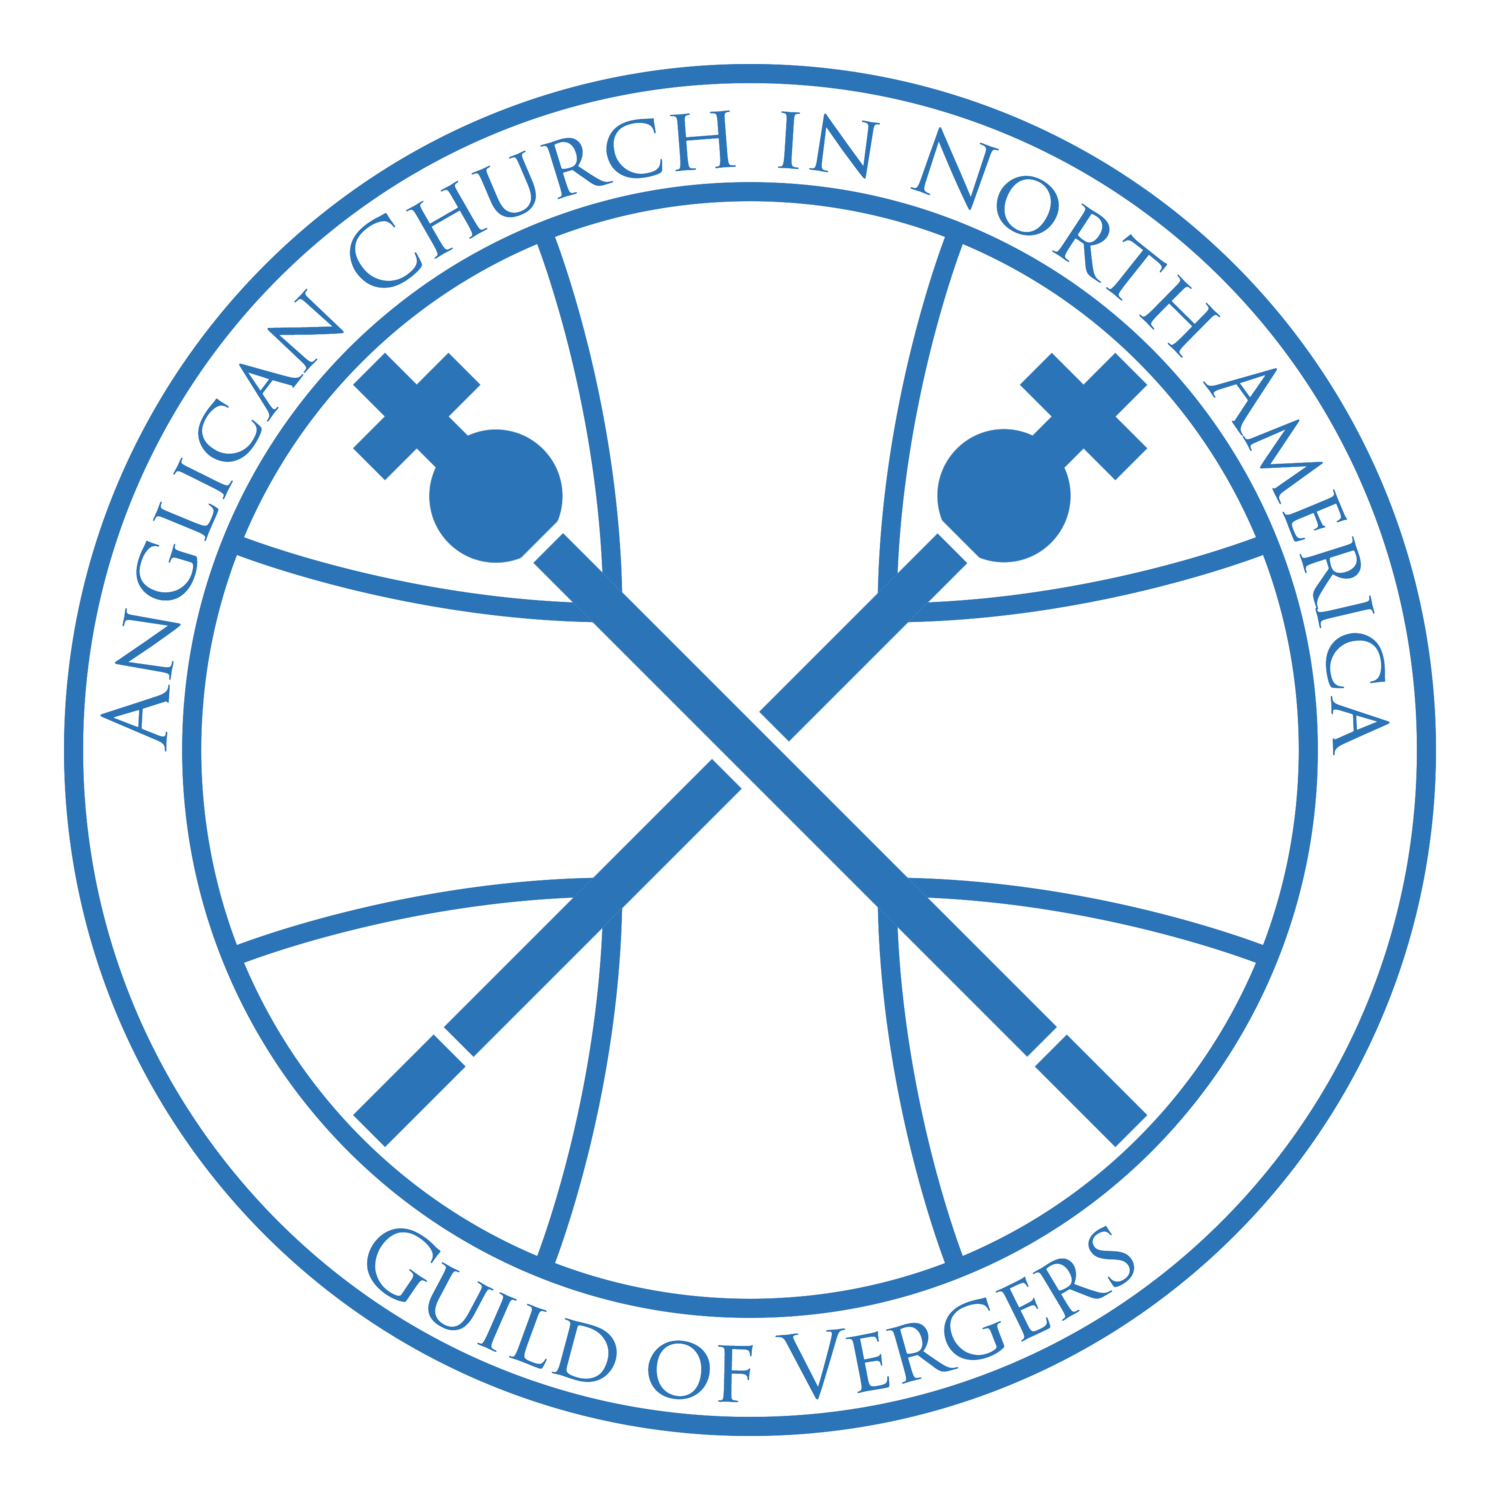 ACNA Guild of Vergers